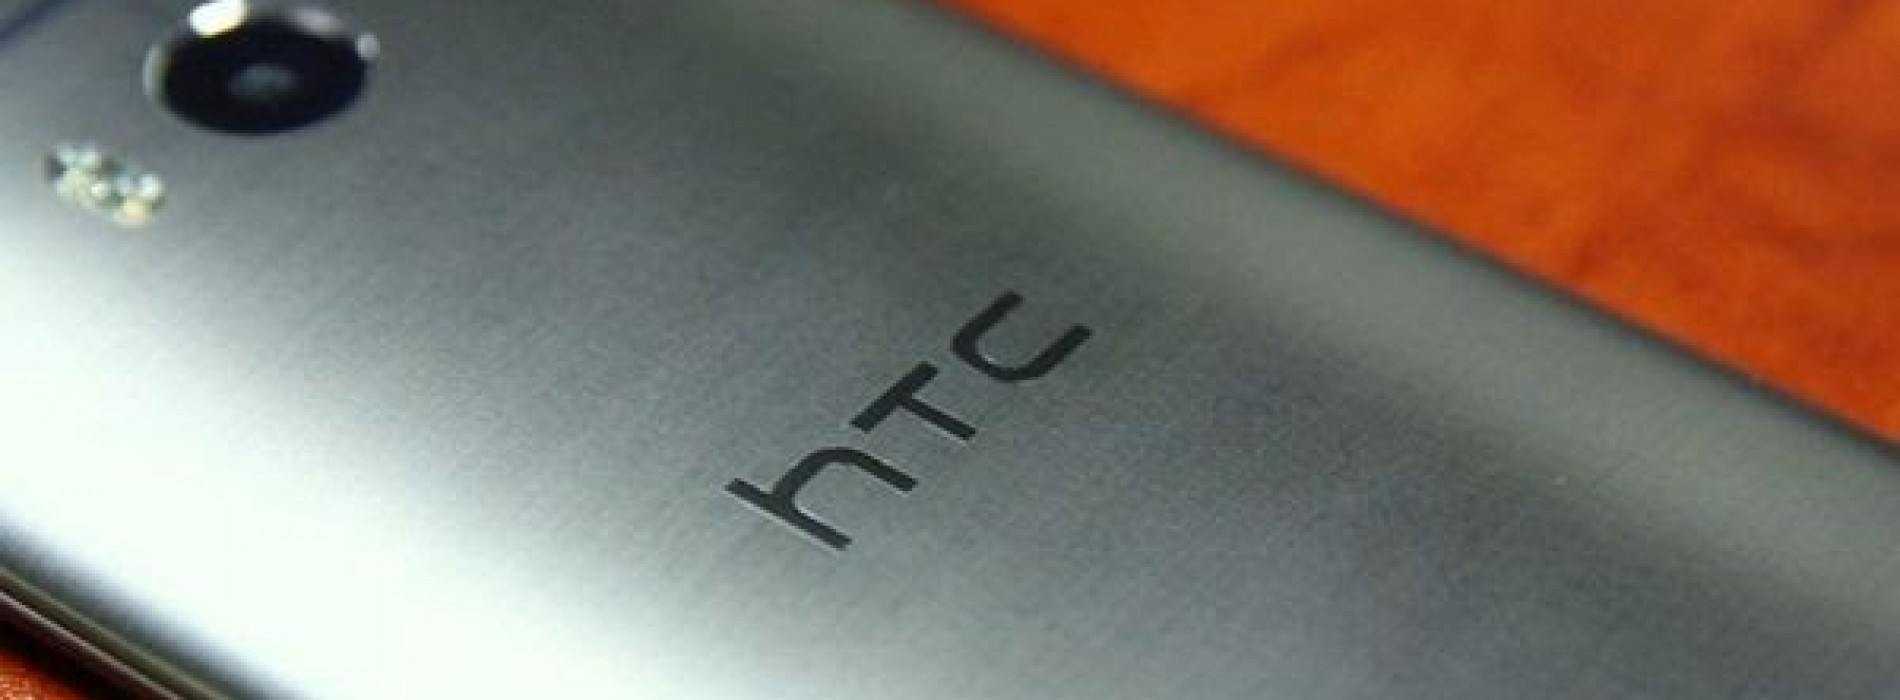 HTC M9 Prime, M9 due in Q1 2015